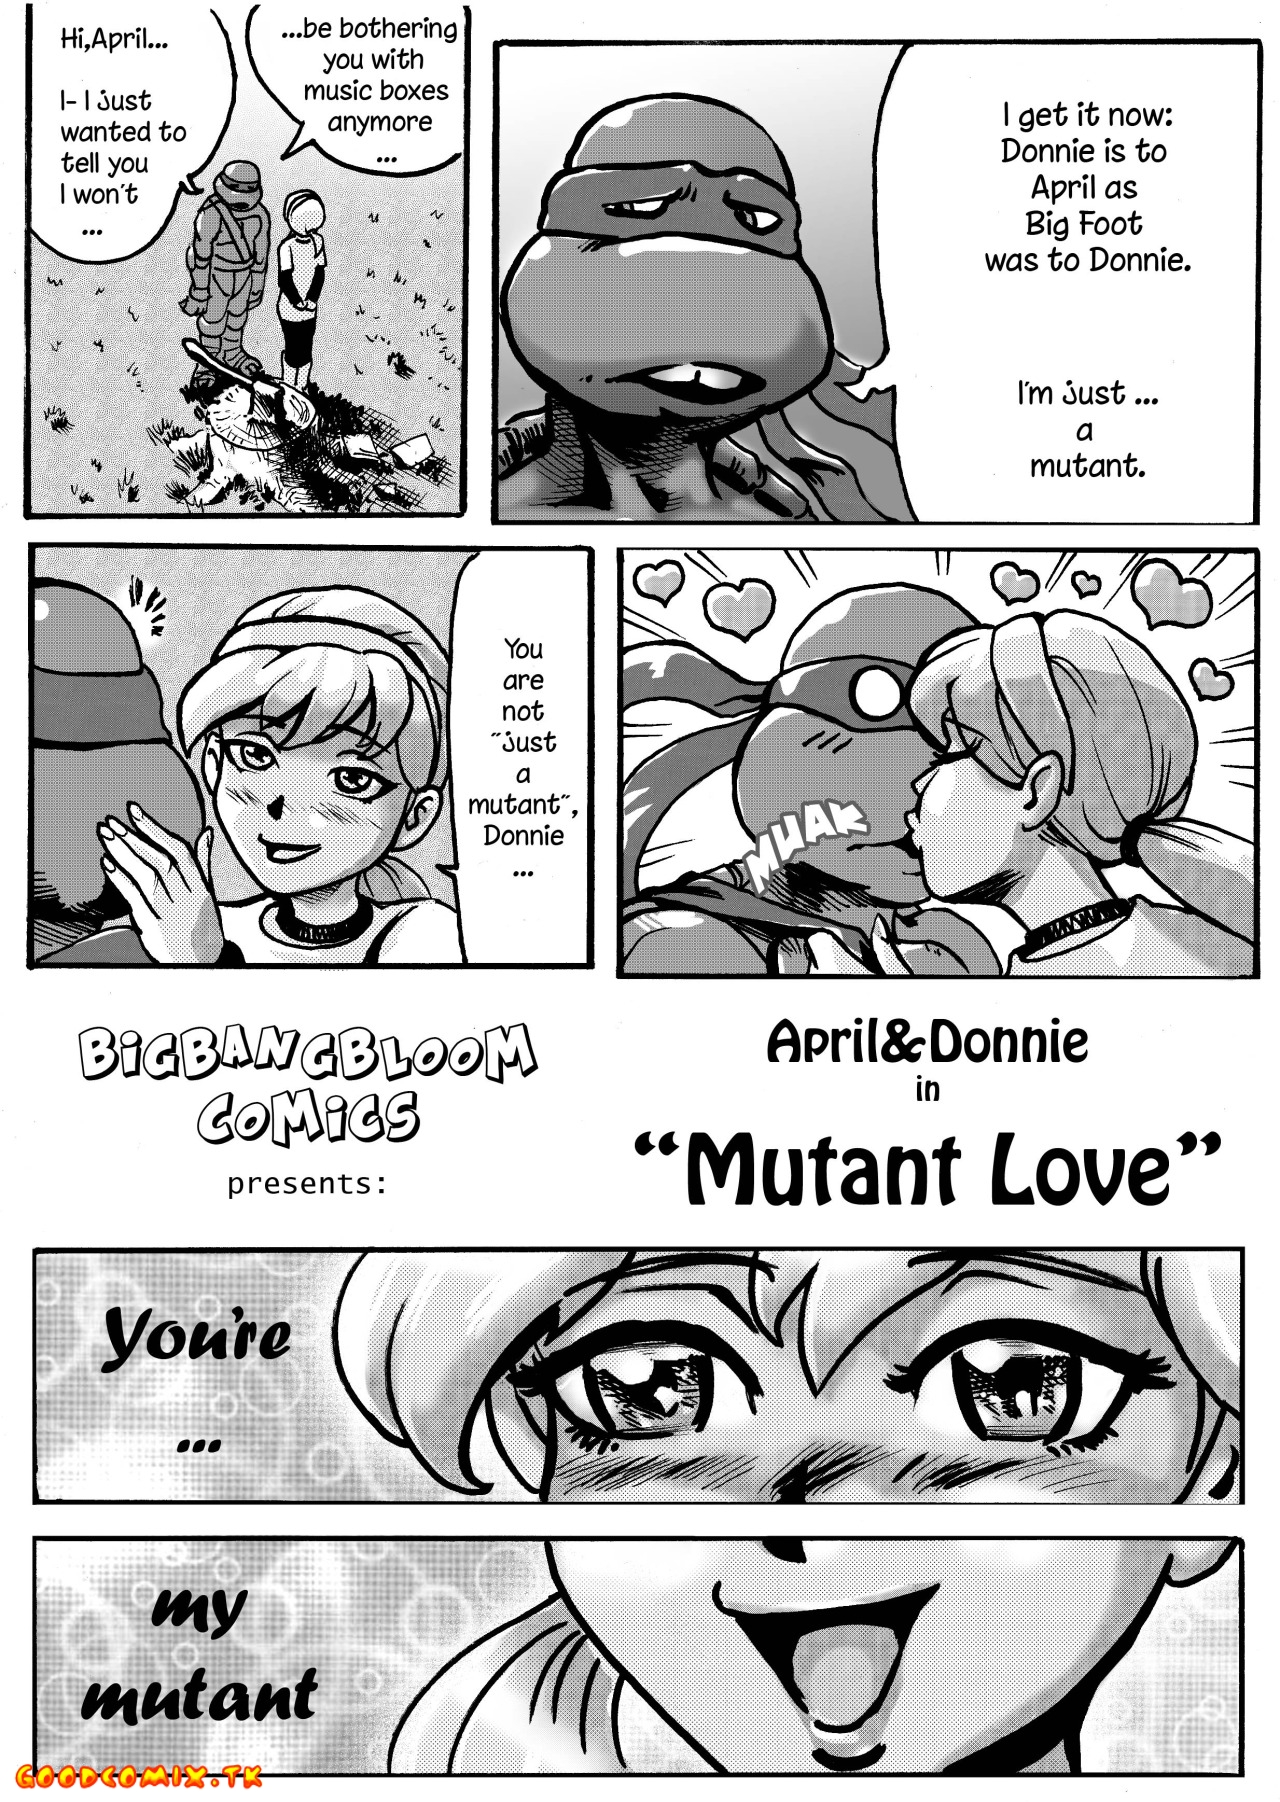 Goodcomix Teenage Mutant Ninja Turtles - [bigbangbloom] - April & Donni in Mutant Love